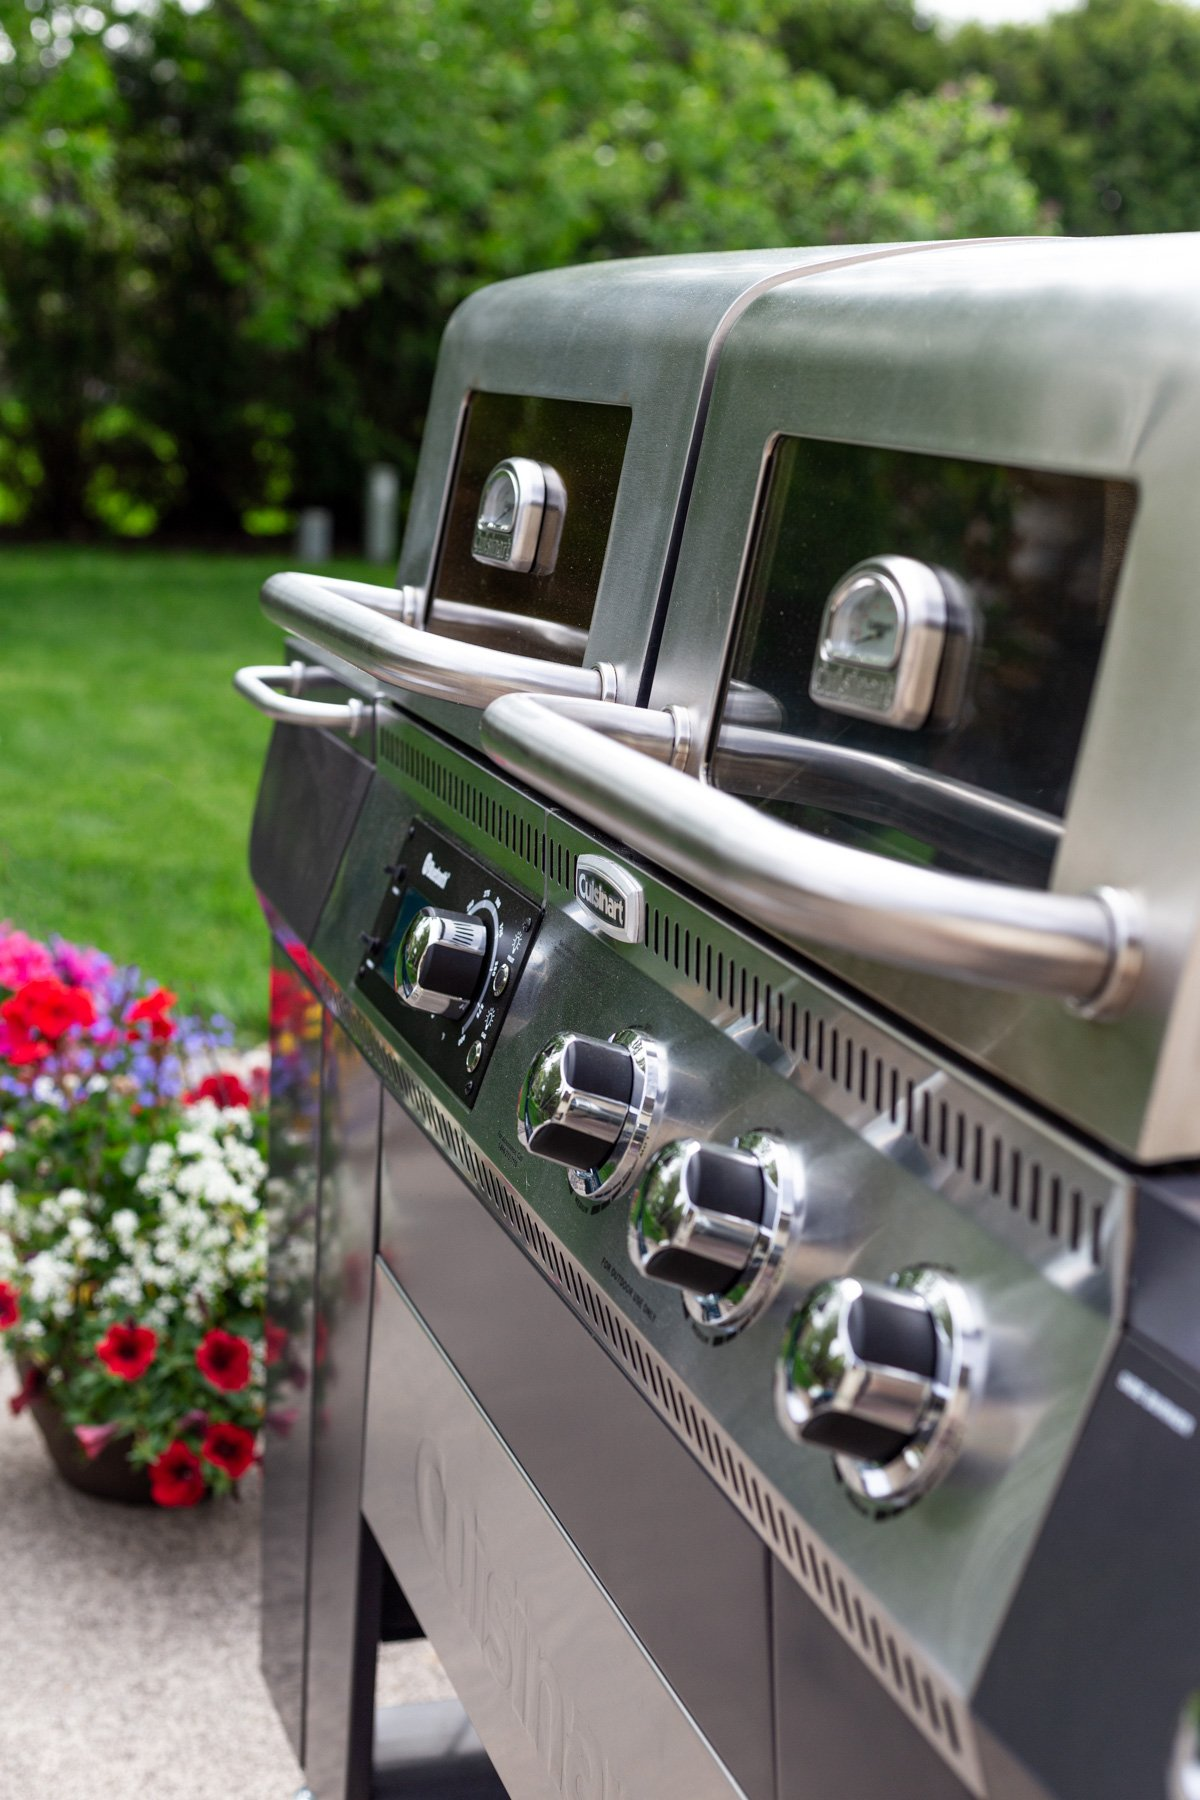 Angled view of Cuisinart Twin Oaks Pellet & Gas Grill with backyard in the distance